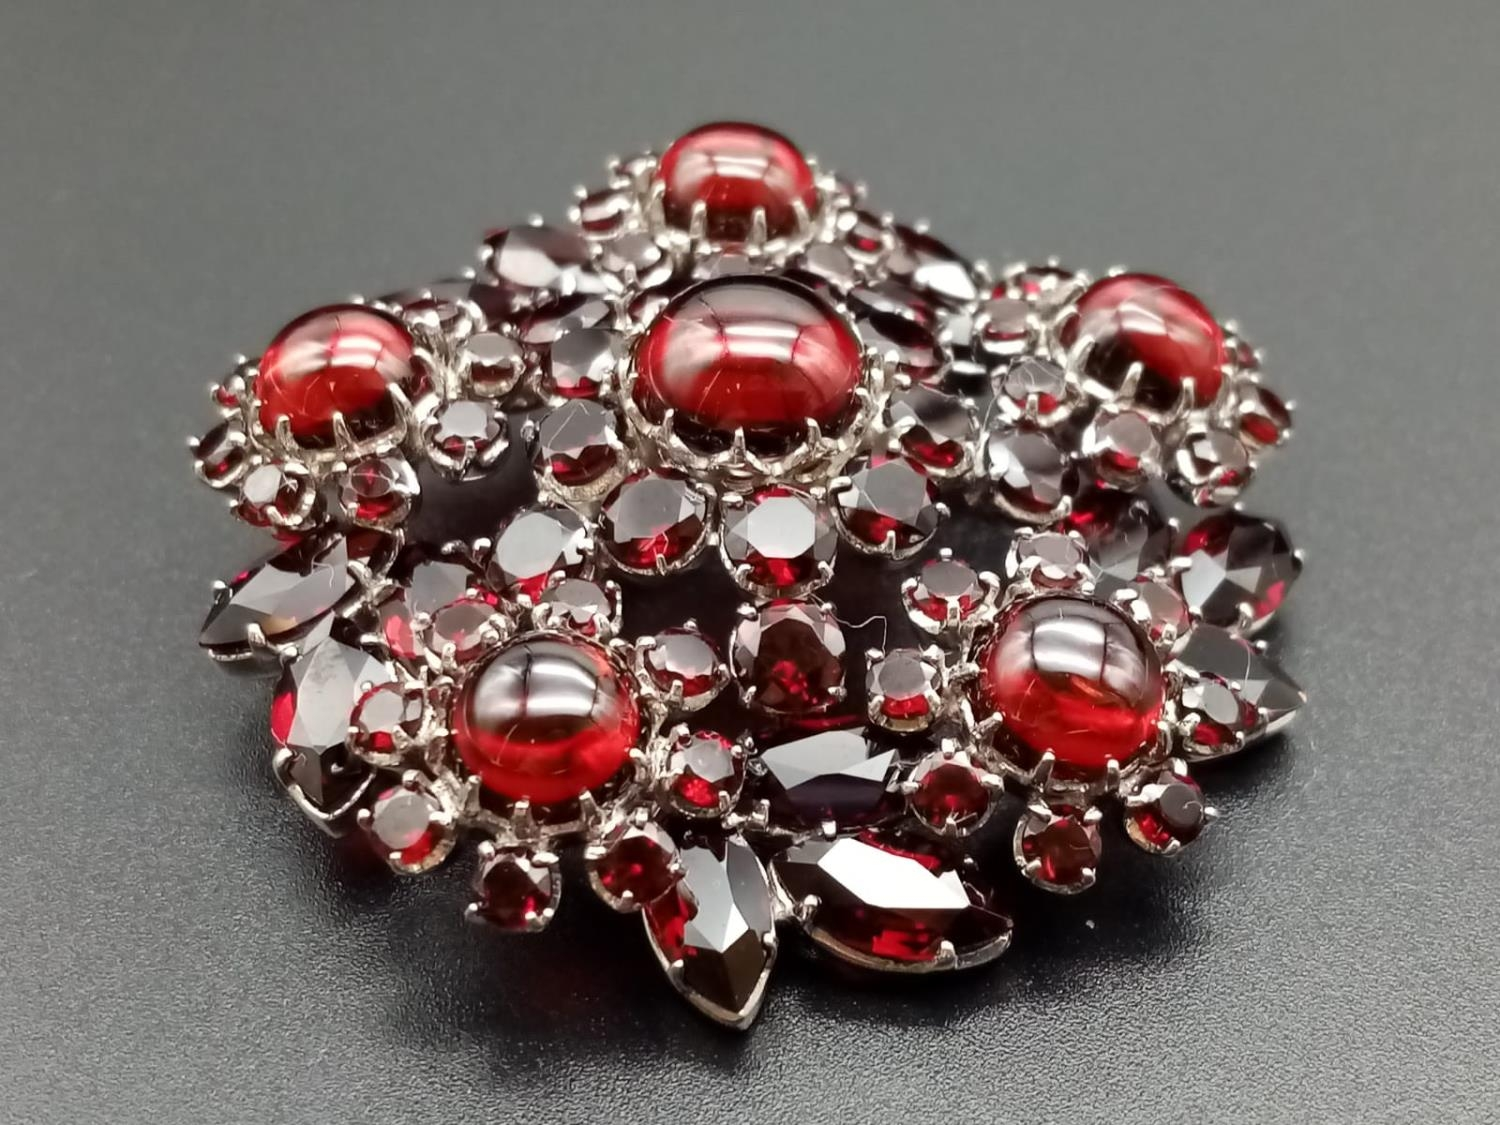 A beautiful sterling silver and garnet brooch (diameter: 46mm) weight: 26.2g - Image 2 of 7